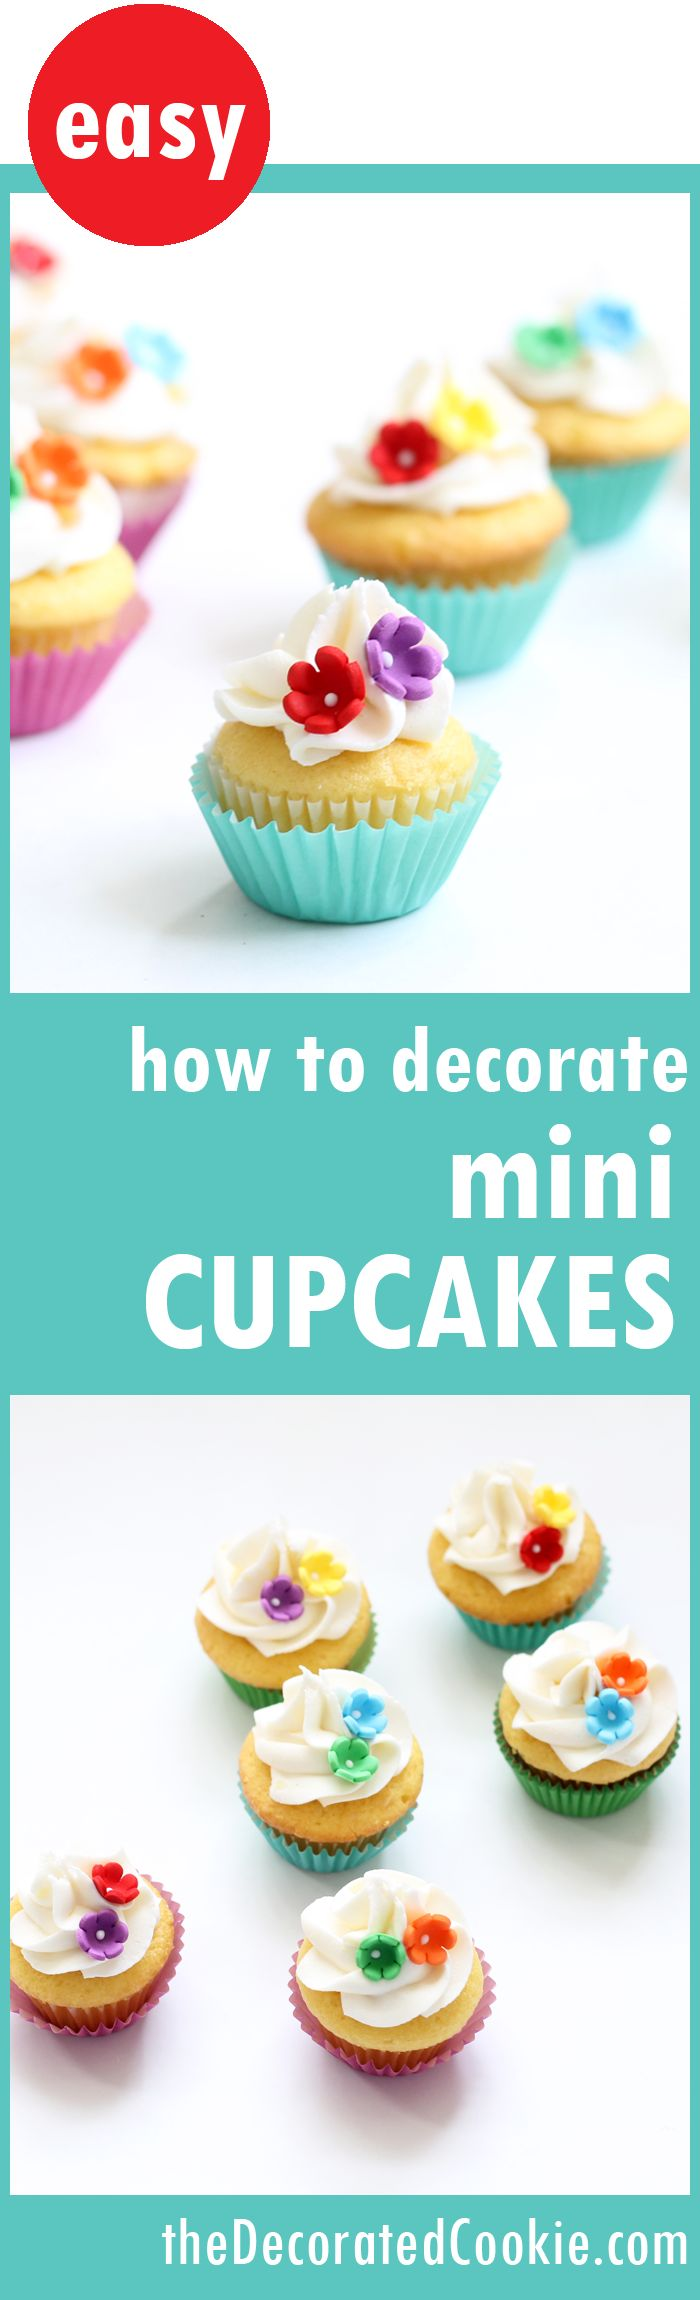 How To Bake And Decorate Mini Cupcakes  With Video Howtos